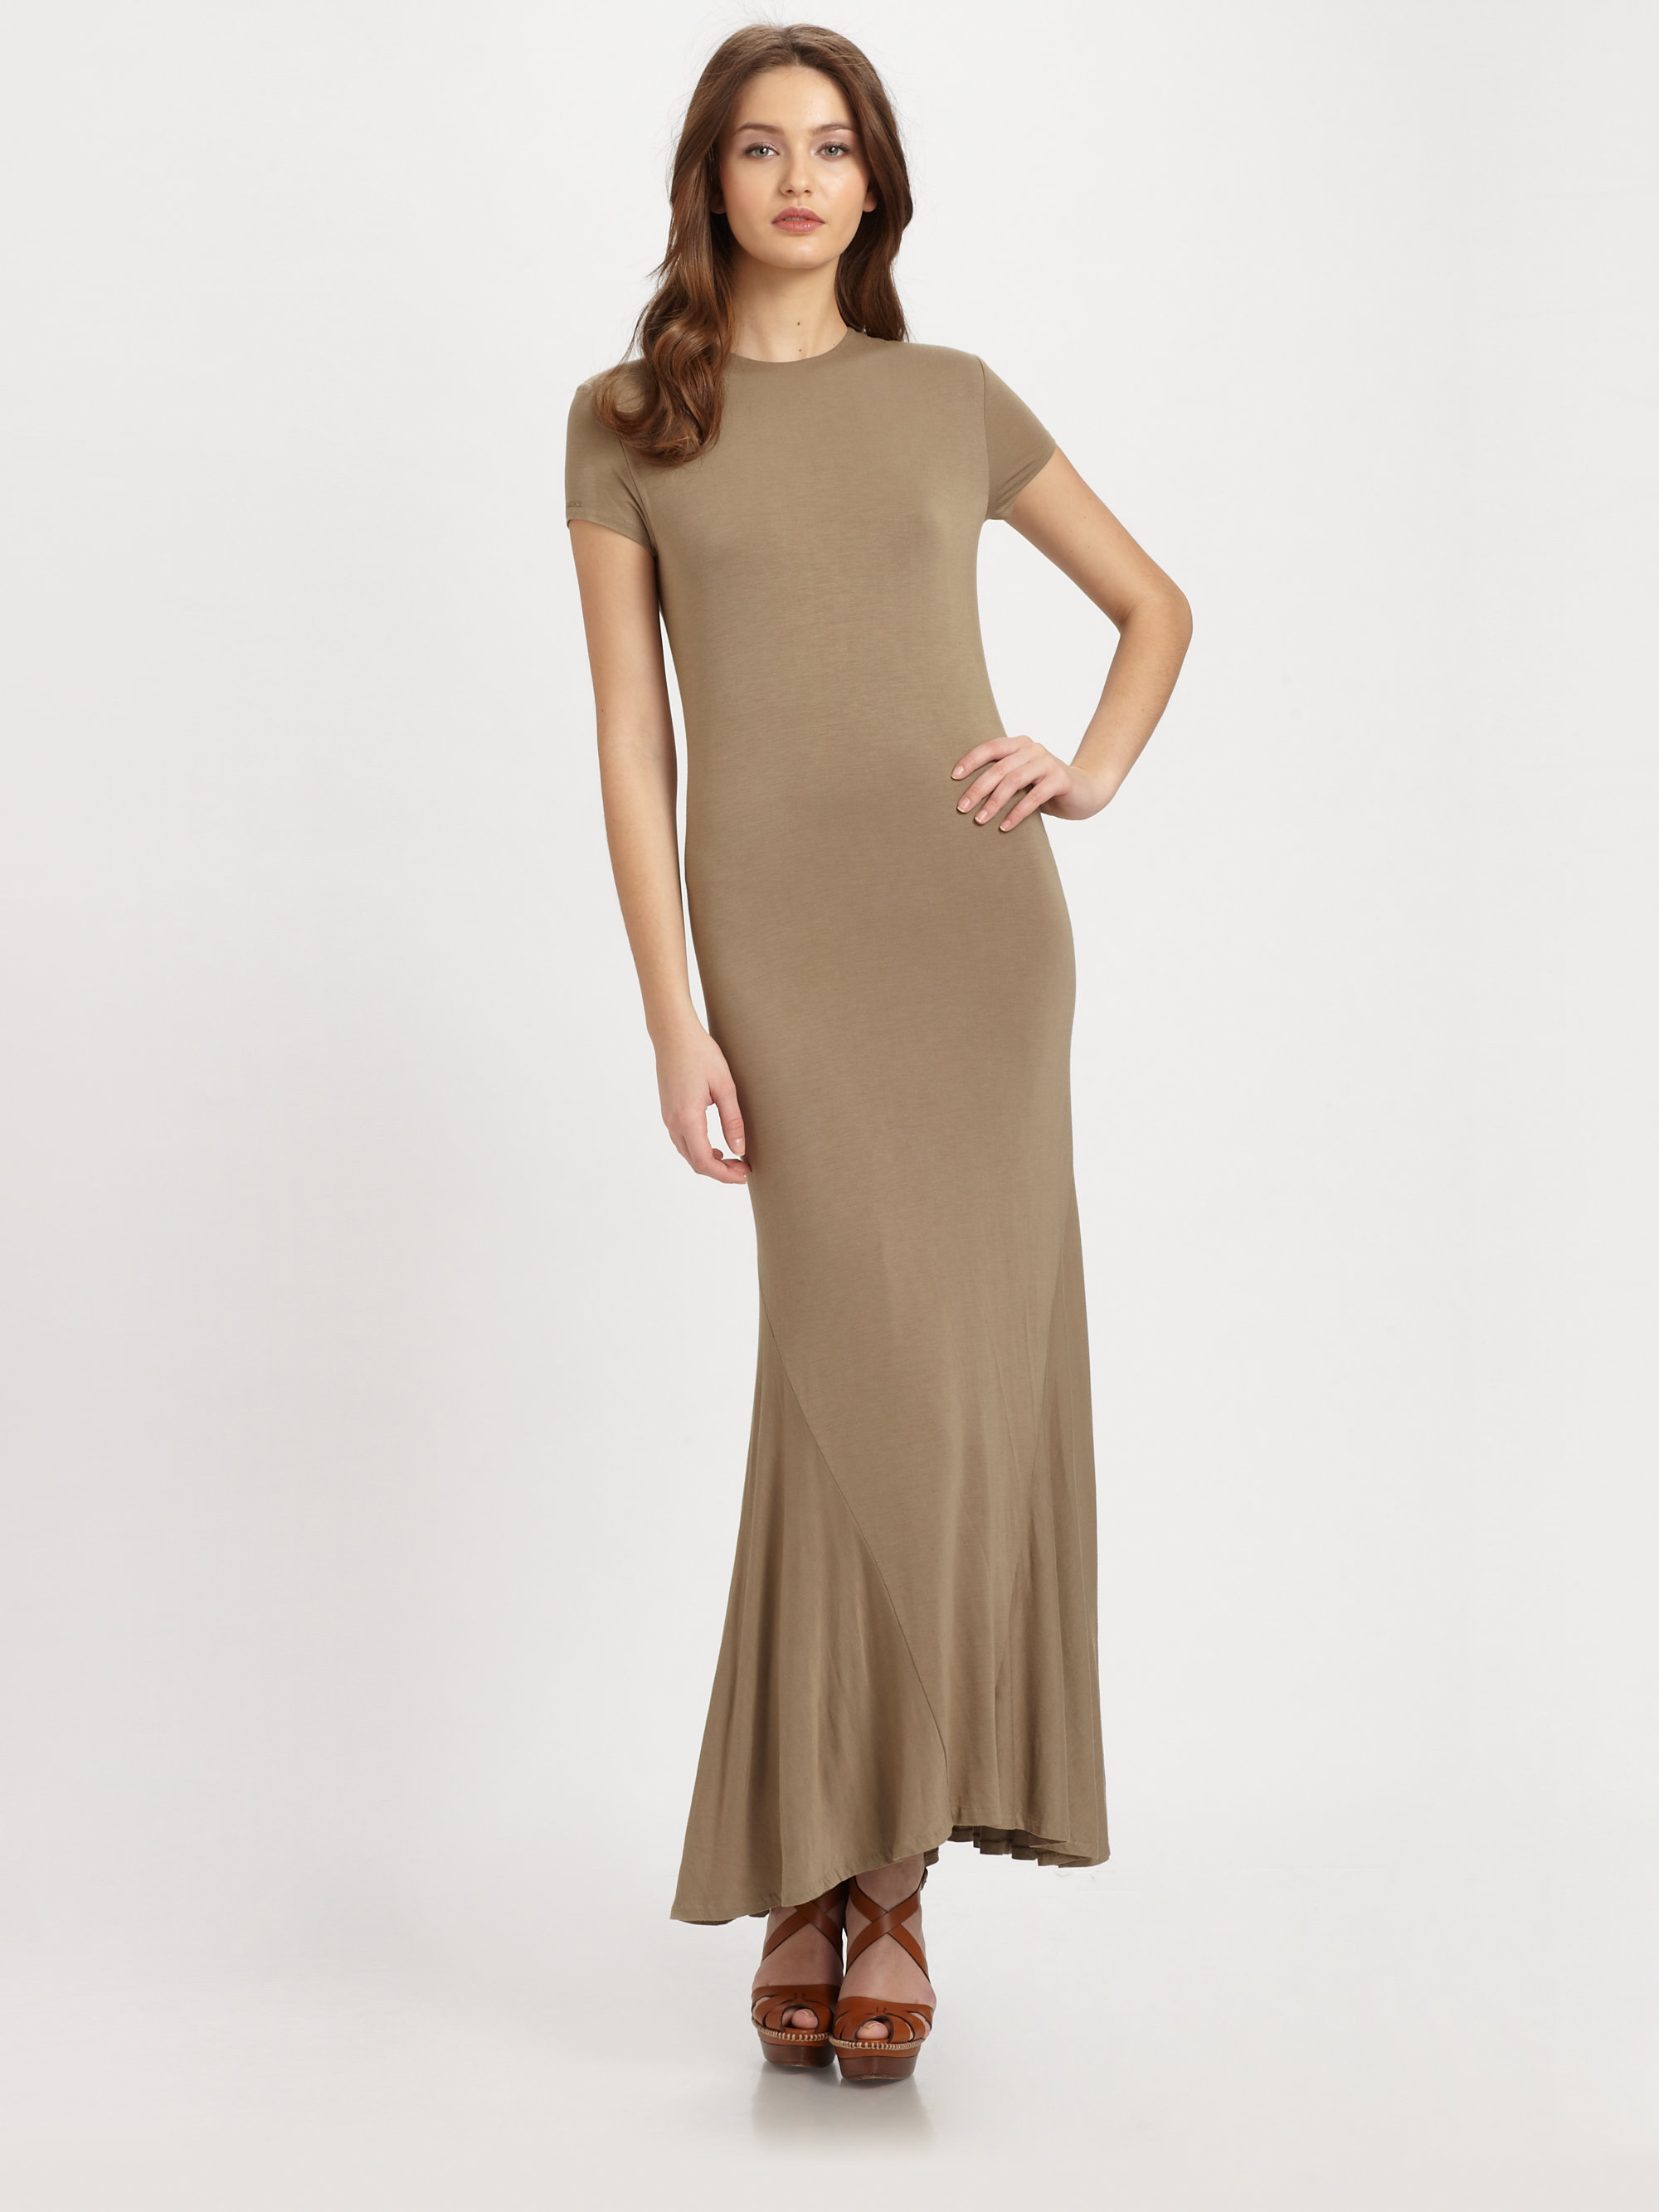 Ralph lauren blue label Jersey Knit Maxi Dress in Brown | Lyst